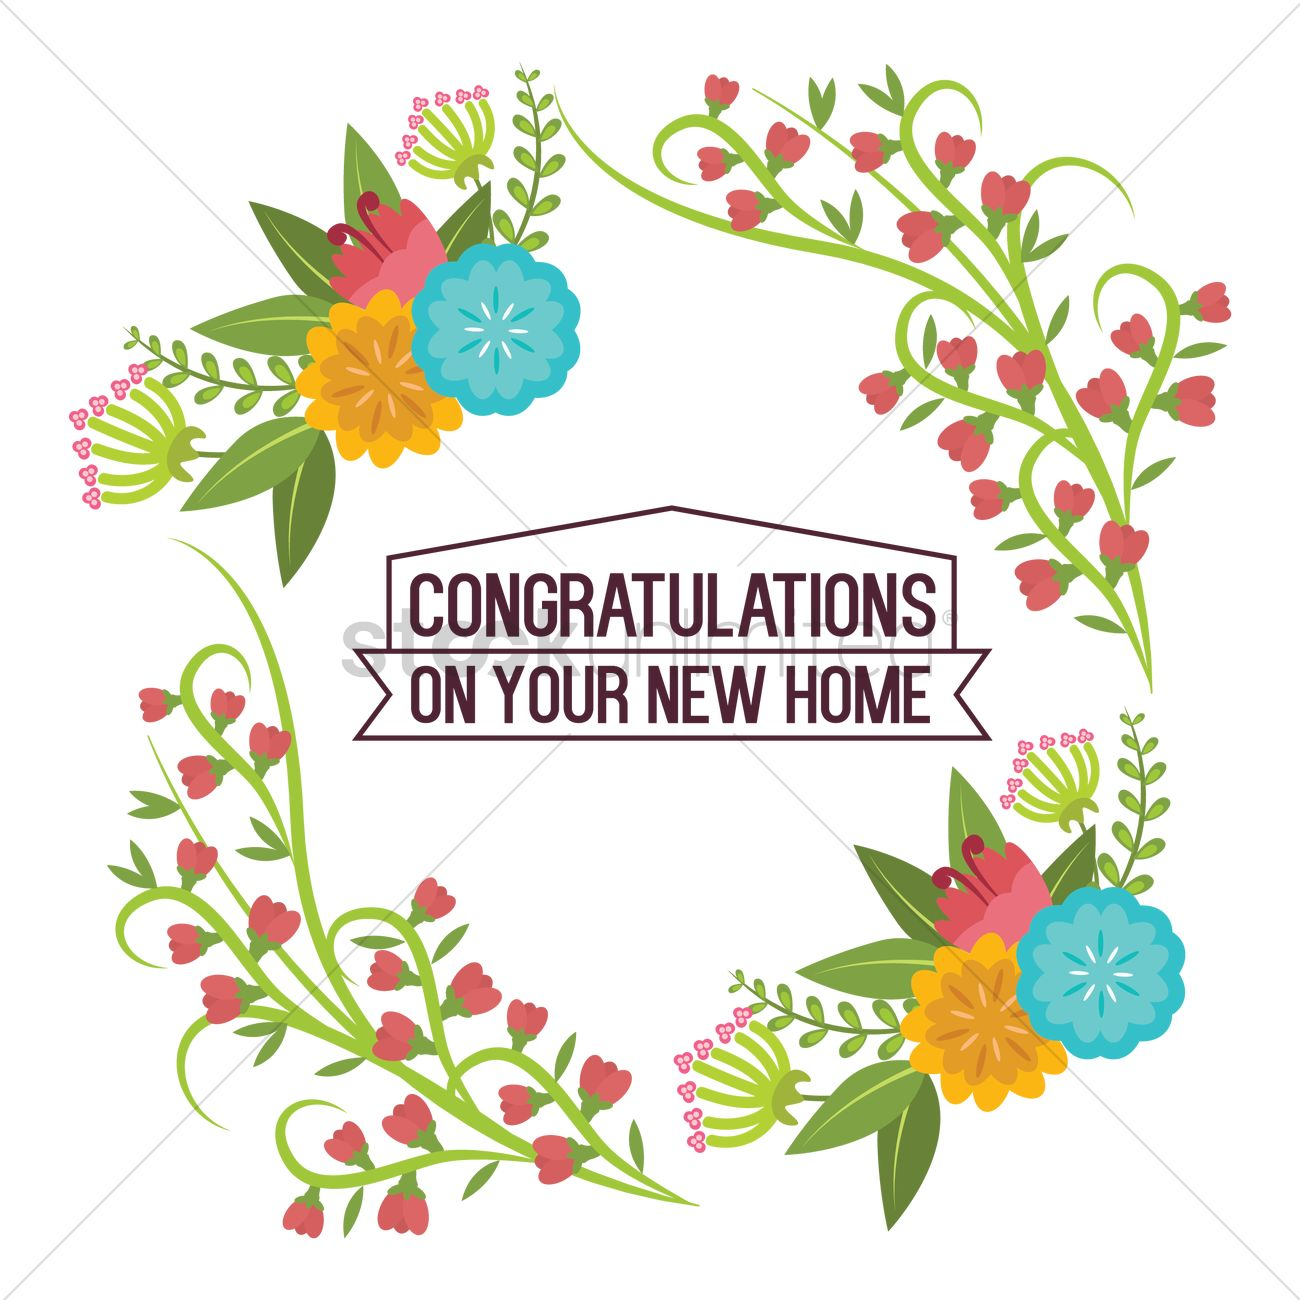 congratulations on your new home vector image 1797501 stockunlimited rh stockunlimited com new home clipart free new house clipart